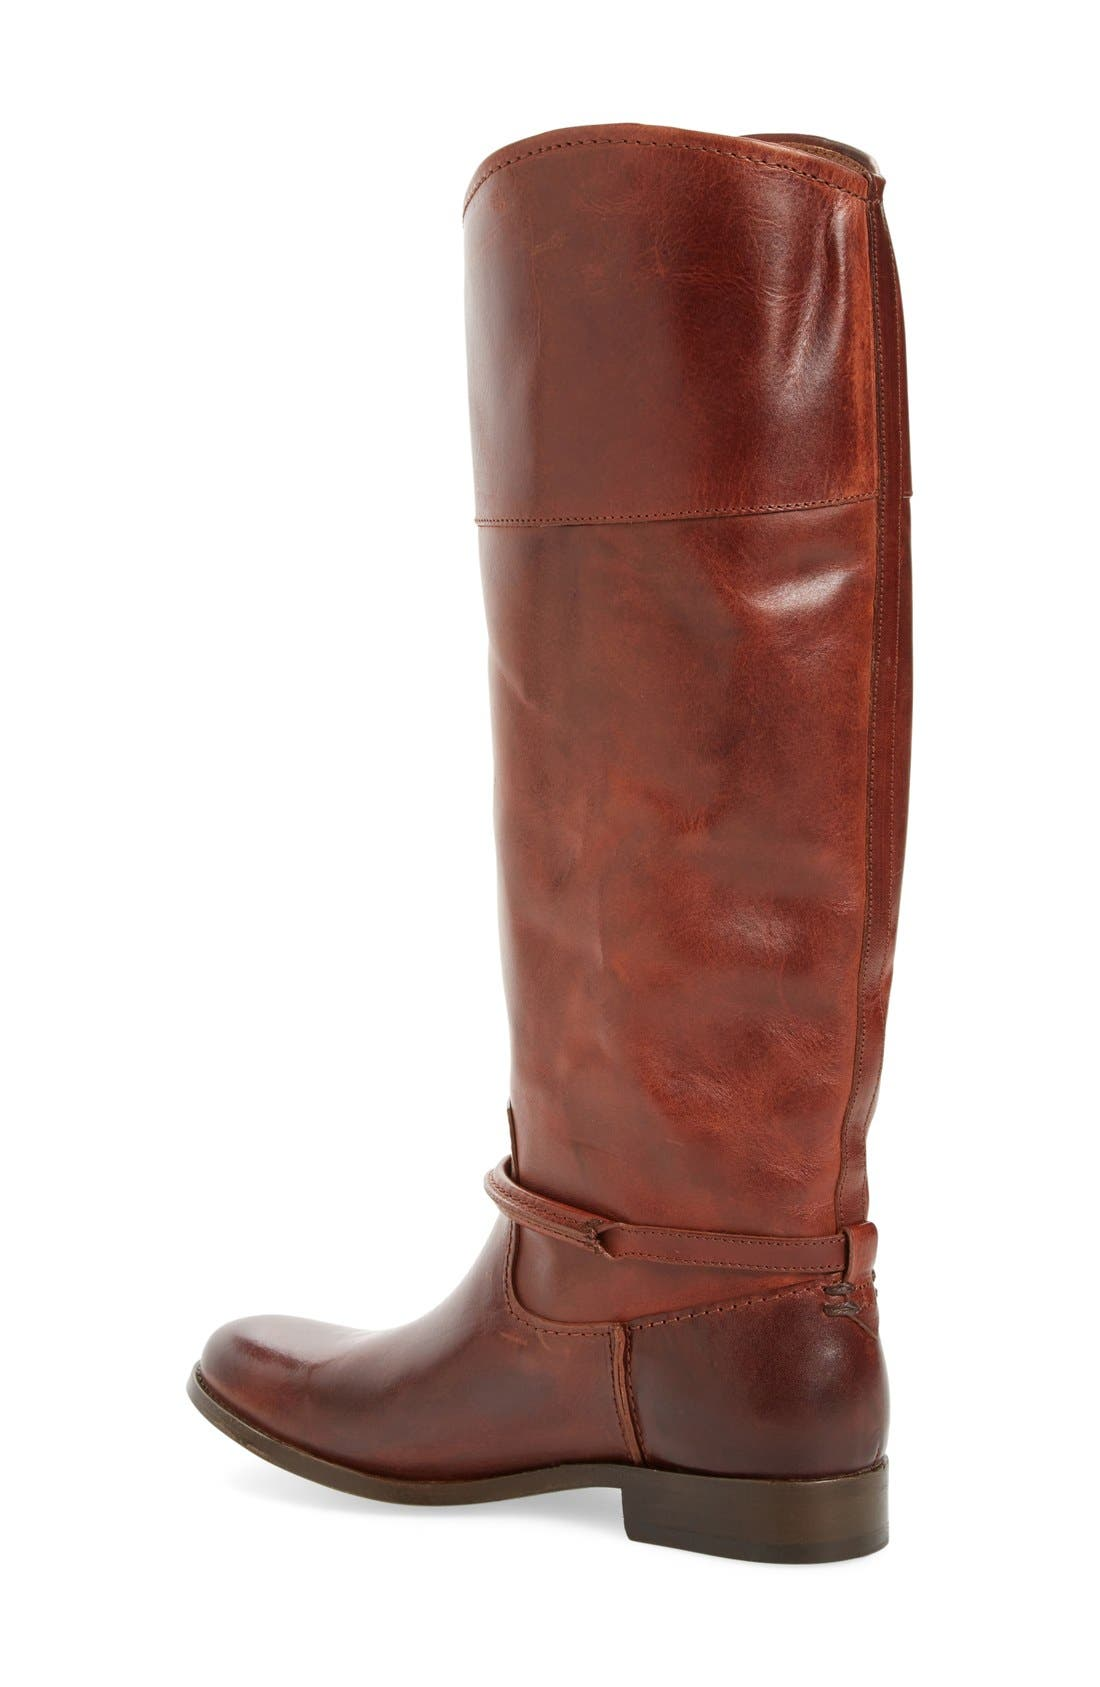 Alternate Image 2  - Frye Melissa Seam Boot (Women) (Wide Calf)